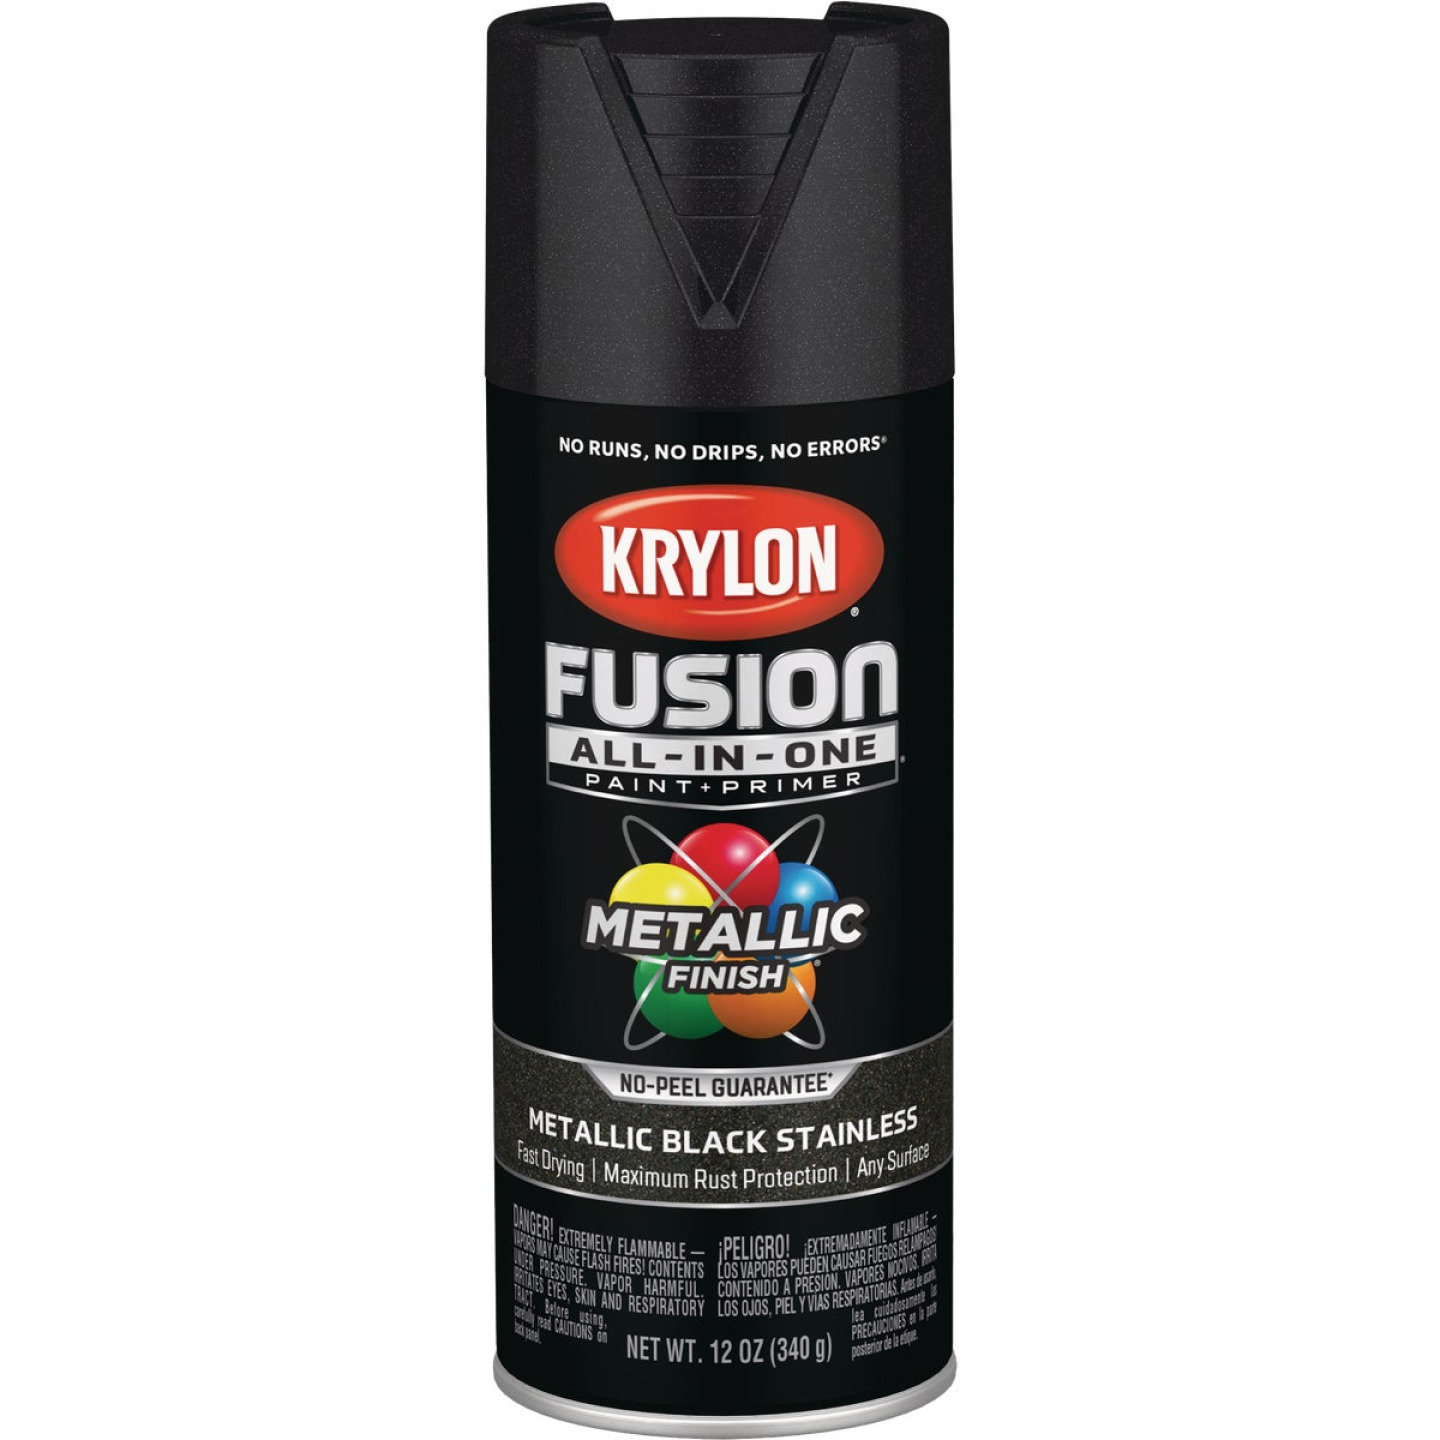 Krylon Fusion All-In-One Metallic Spray Paint & Primer, Black Stainless Image 1